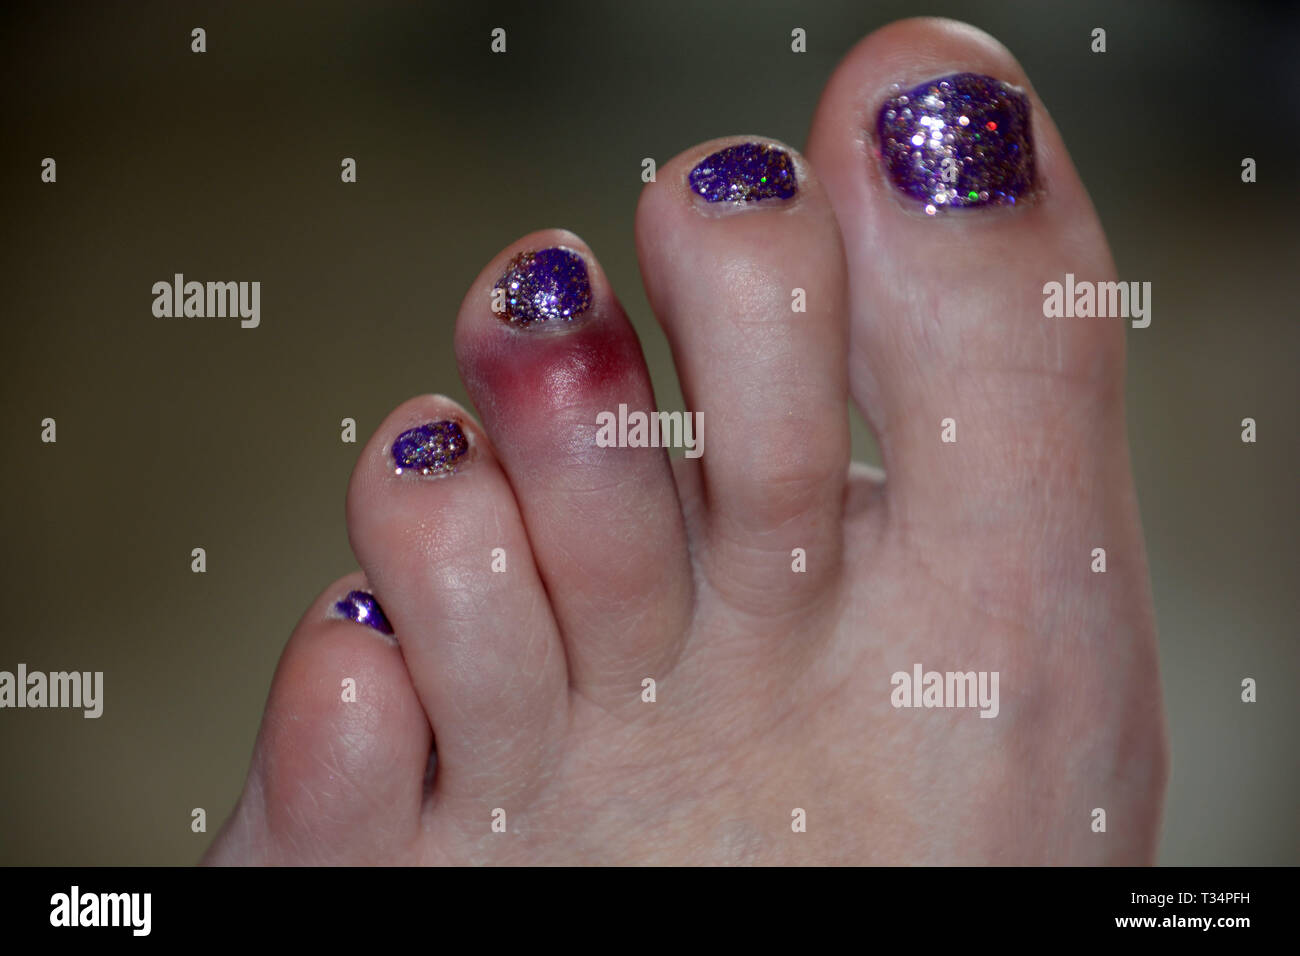 close-up view of dislocated toe bruising after sport mistake, black and blue bruise on the left foot of the middle toe of a female after a painful acc - Stock Image